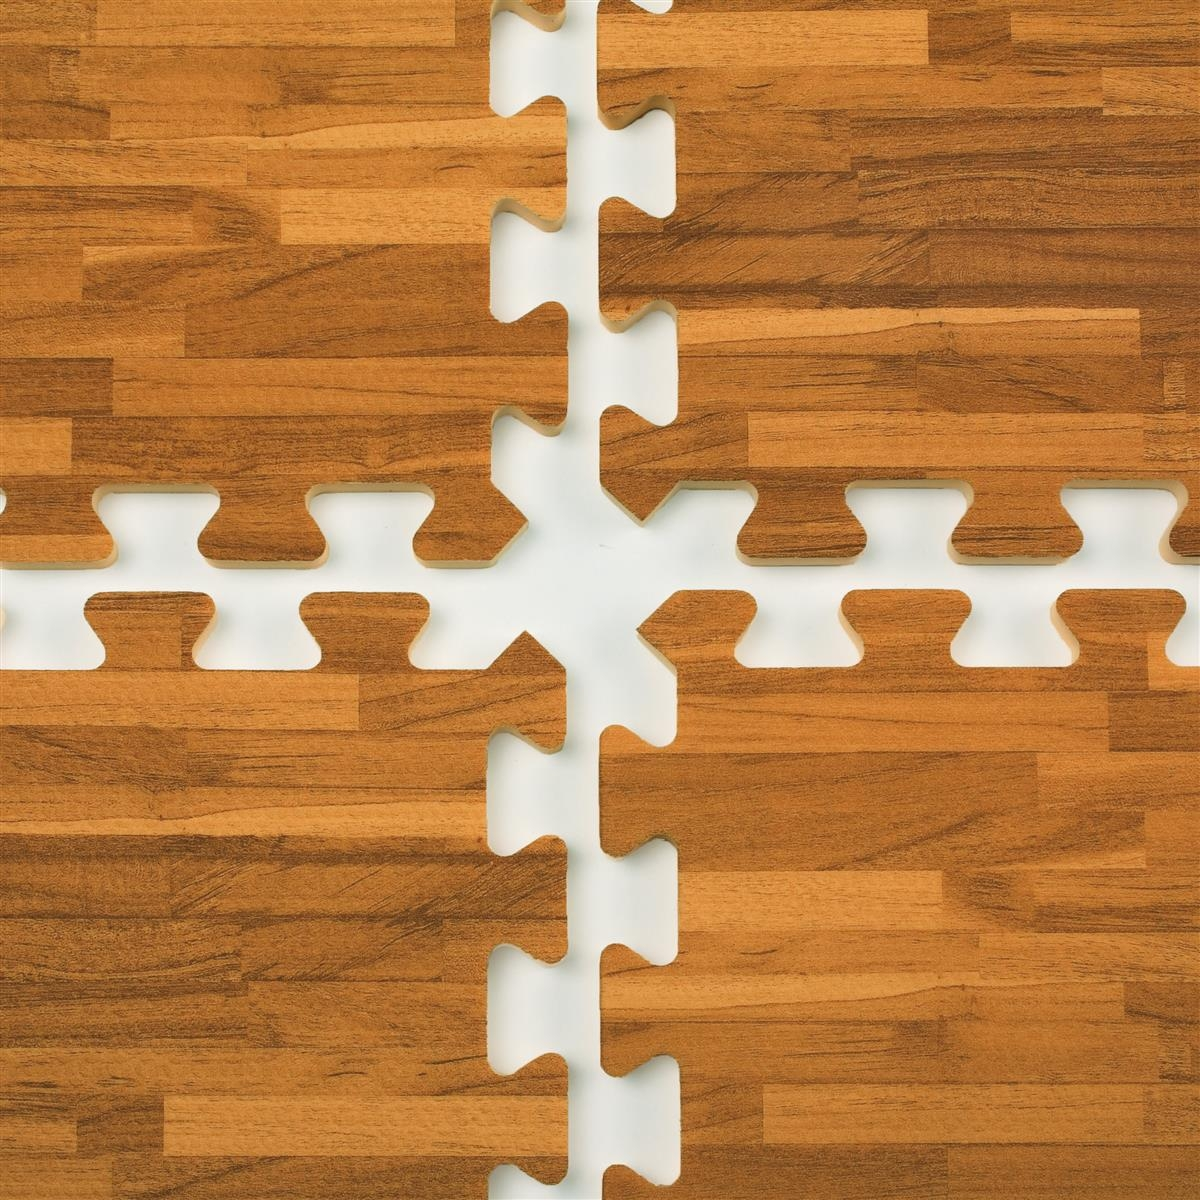 We Sell Mats Wood Grain Interlocking Foam Anti Fatigue Flooring1200 X 1200